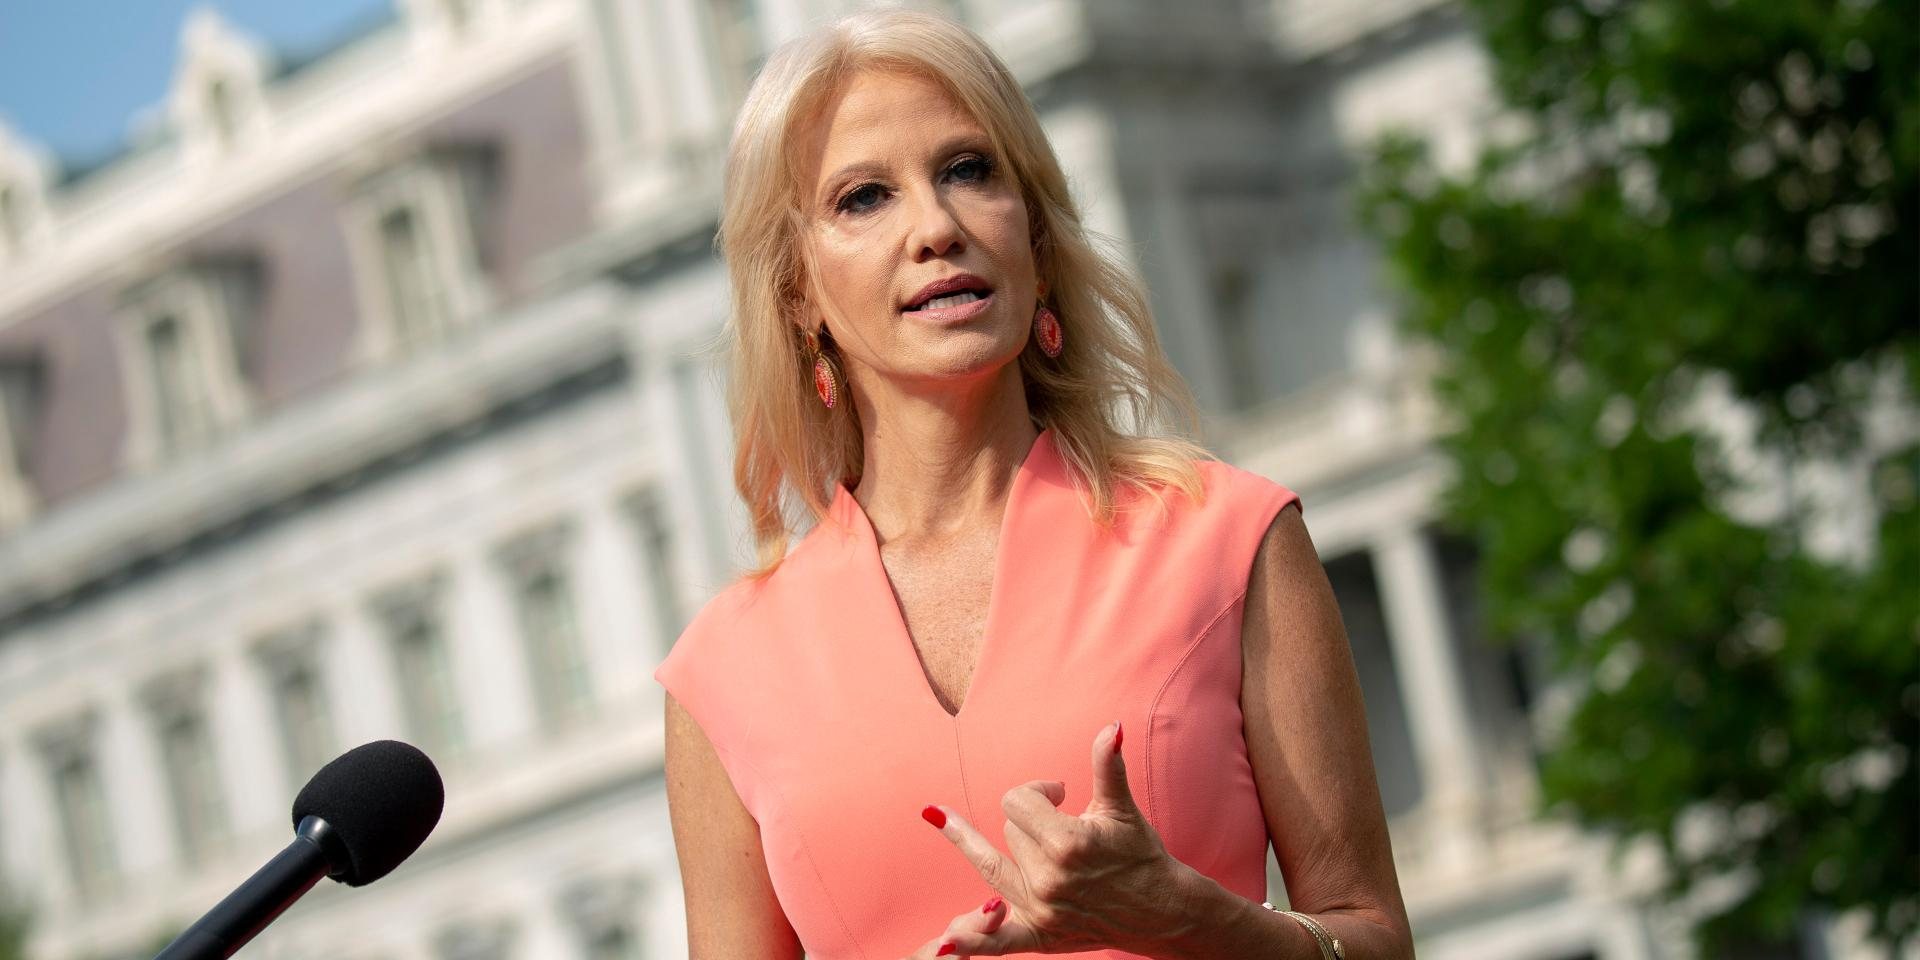 Cops Investigating Kellyanne Conway After Child Abuse Claims